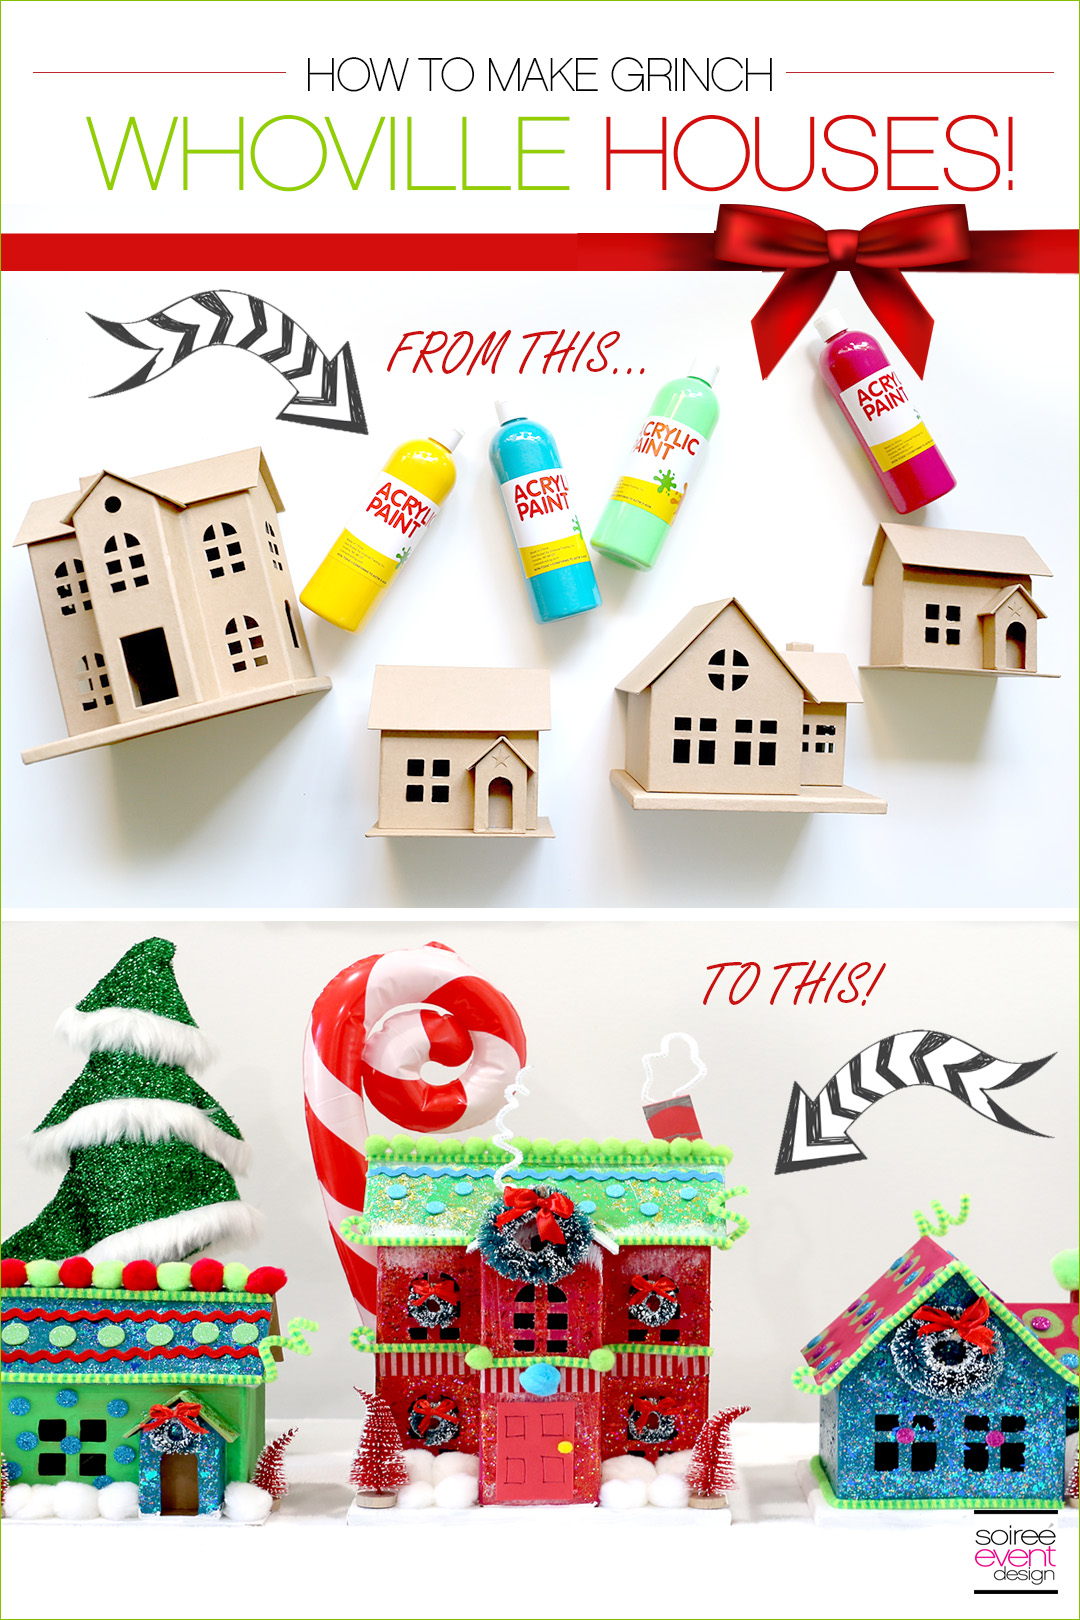 Grinch Party Ideas - Whoville Houses